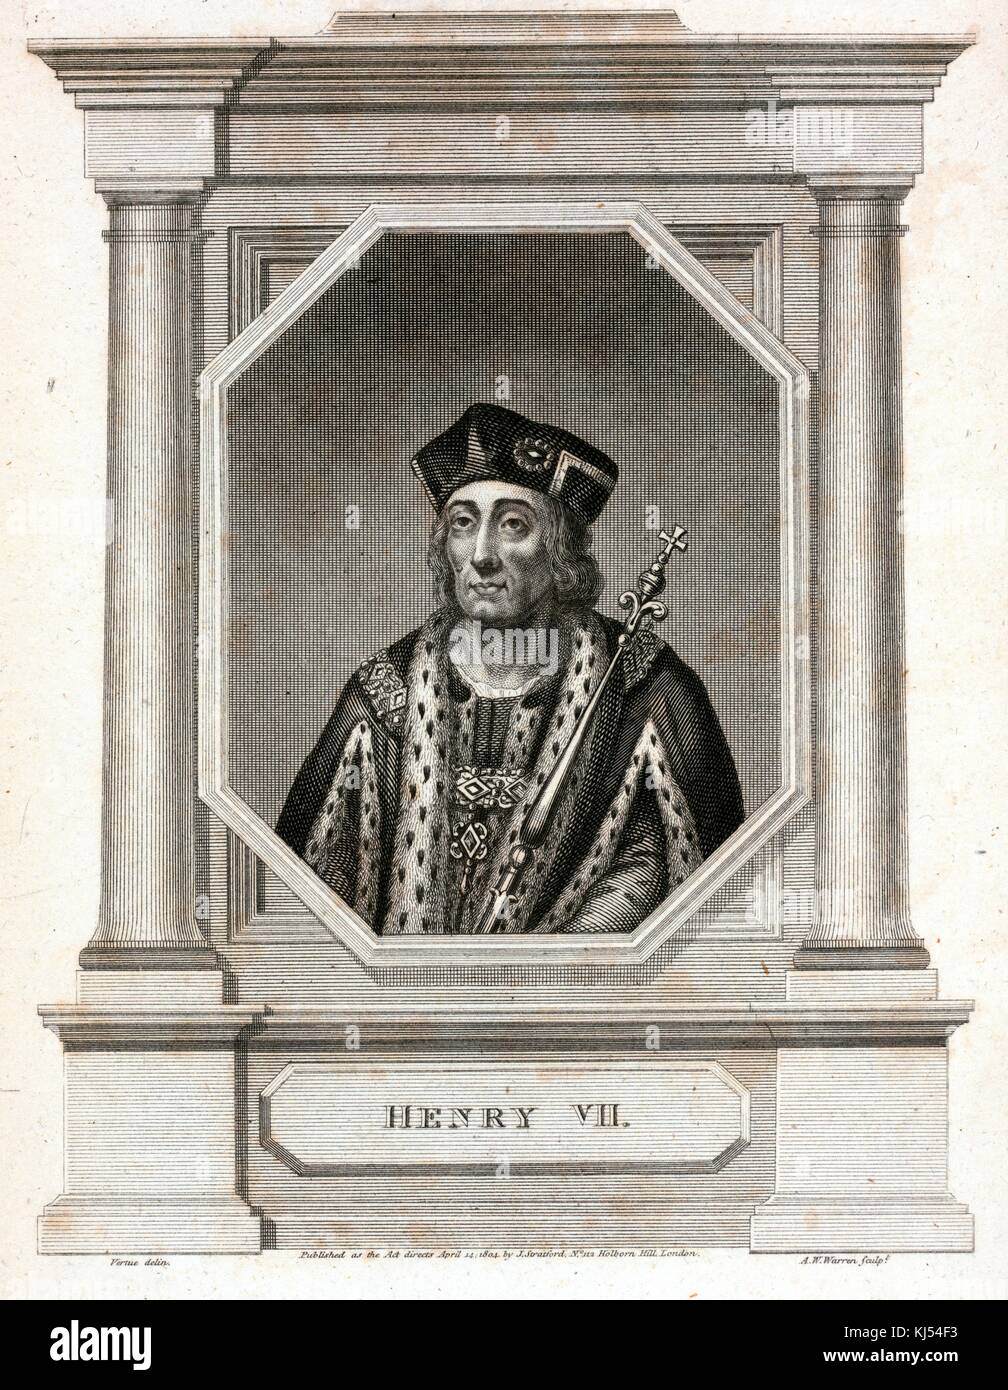 henry vii of england Henry viii (28 june 1491 – 28 january 1547) was the king of england from 1509 until his death he is perhaps one of england's most famous monarchs because he and thomas cromwell the archbishop of canterbury split from the roman catholic church and the pope , and he married six times.